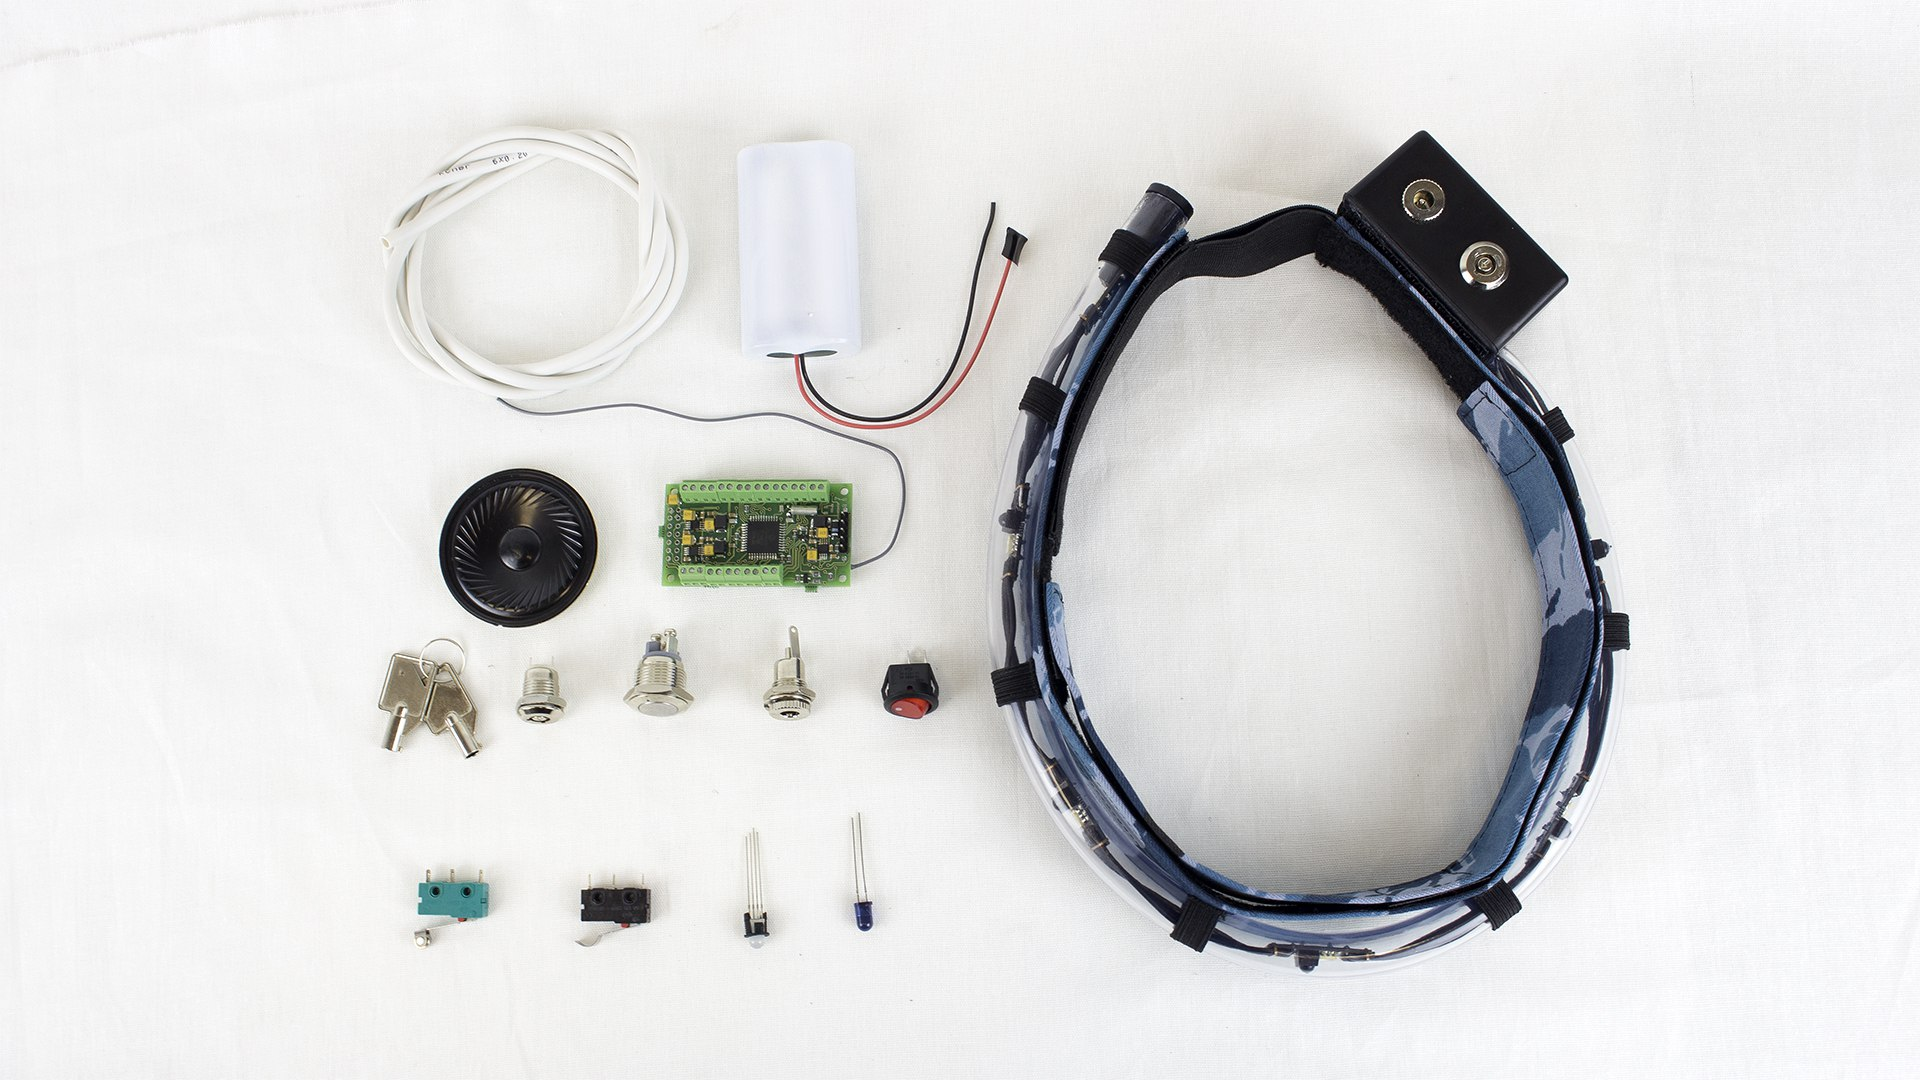 Self-assembly kit